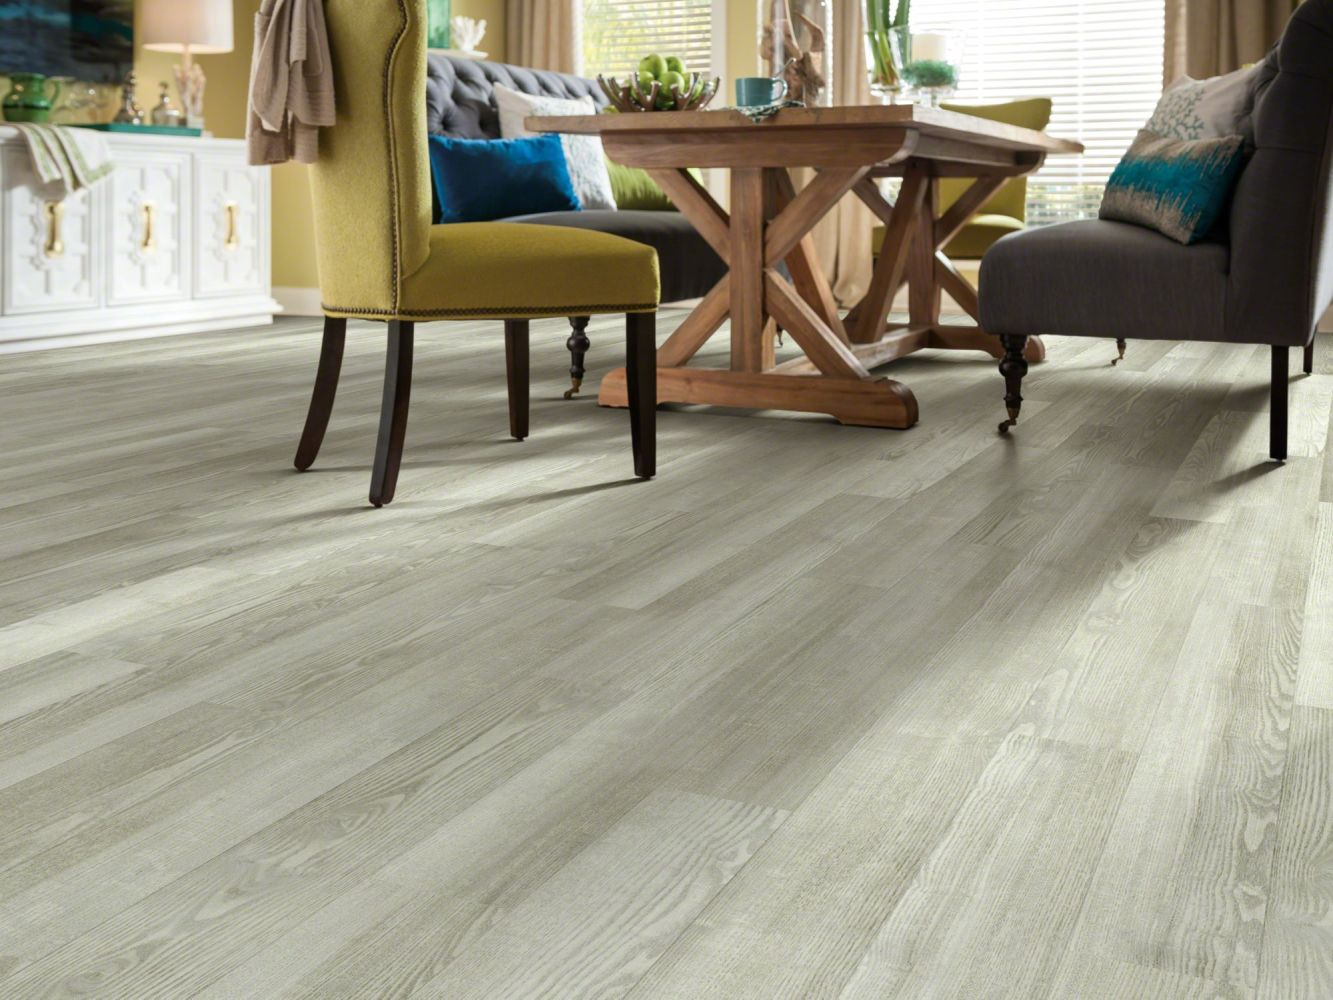 Shaw Floors Resilient Residential Three Rivers 20 Cotton Block 05013_0882V